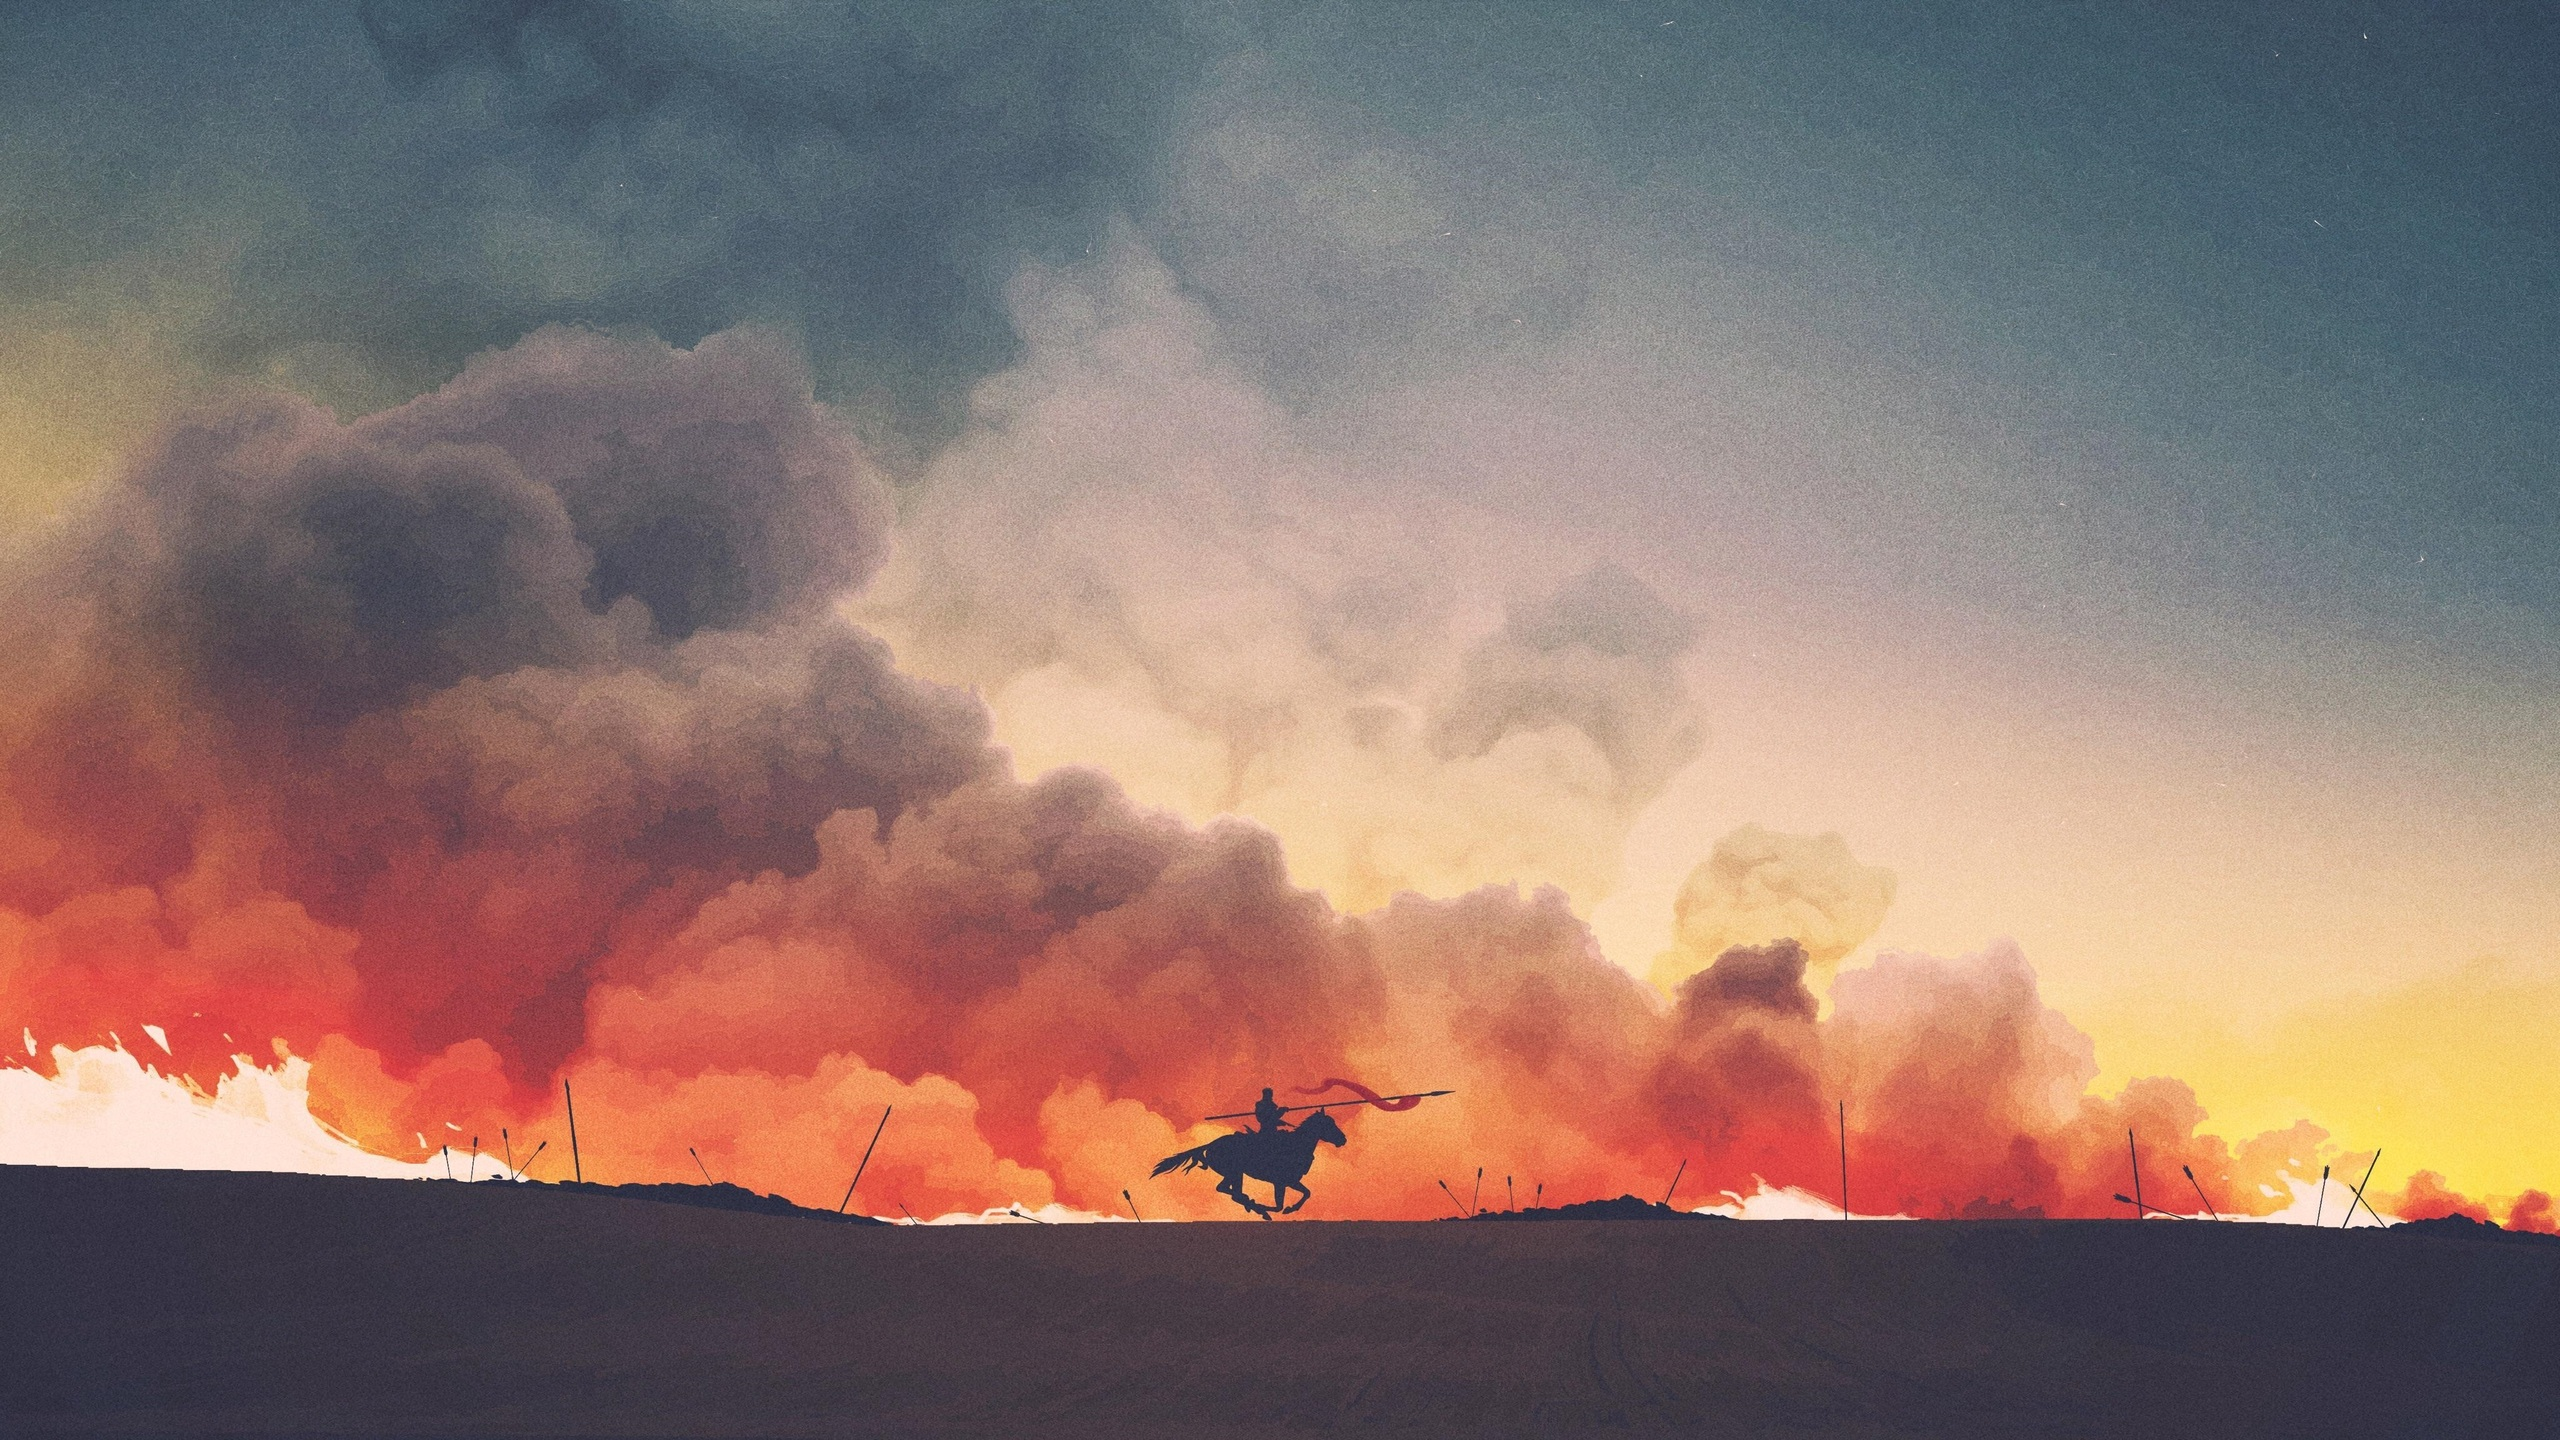 2560x1440 game of thrones a song of ice and fire 1440p resolution hd